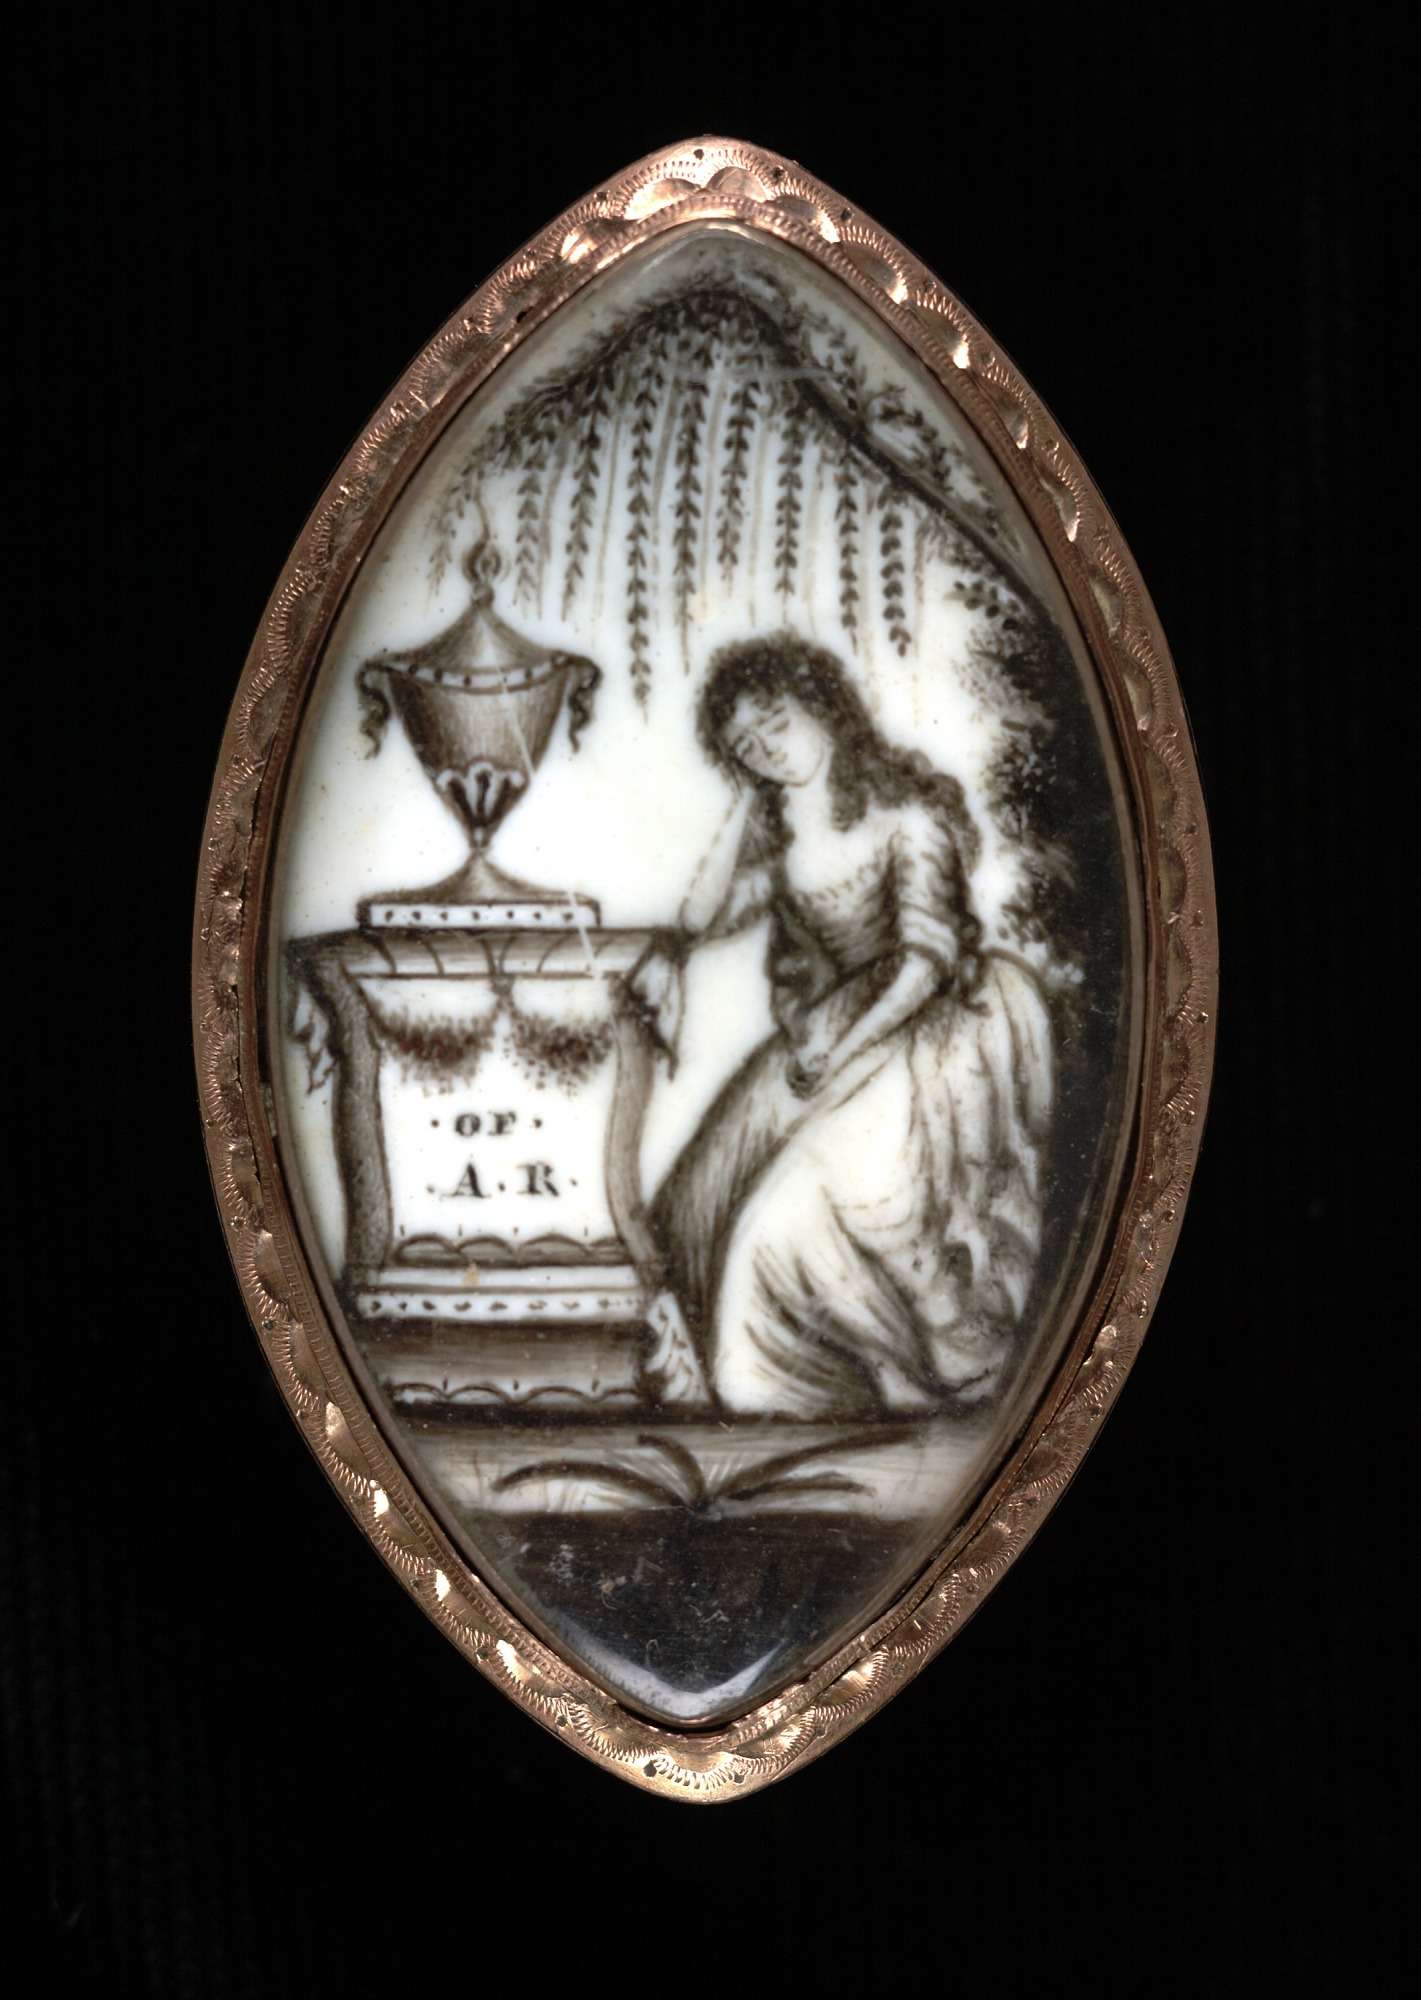 Mourning Locket for A. R.